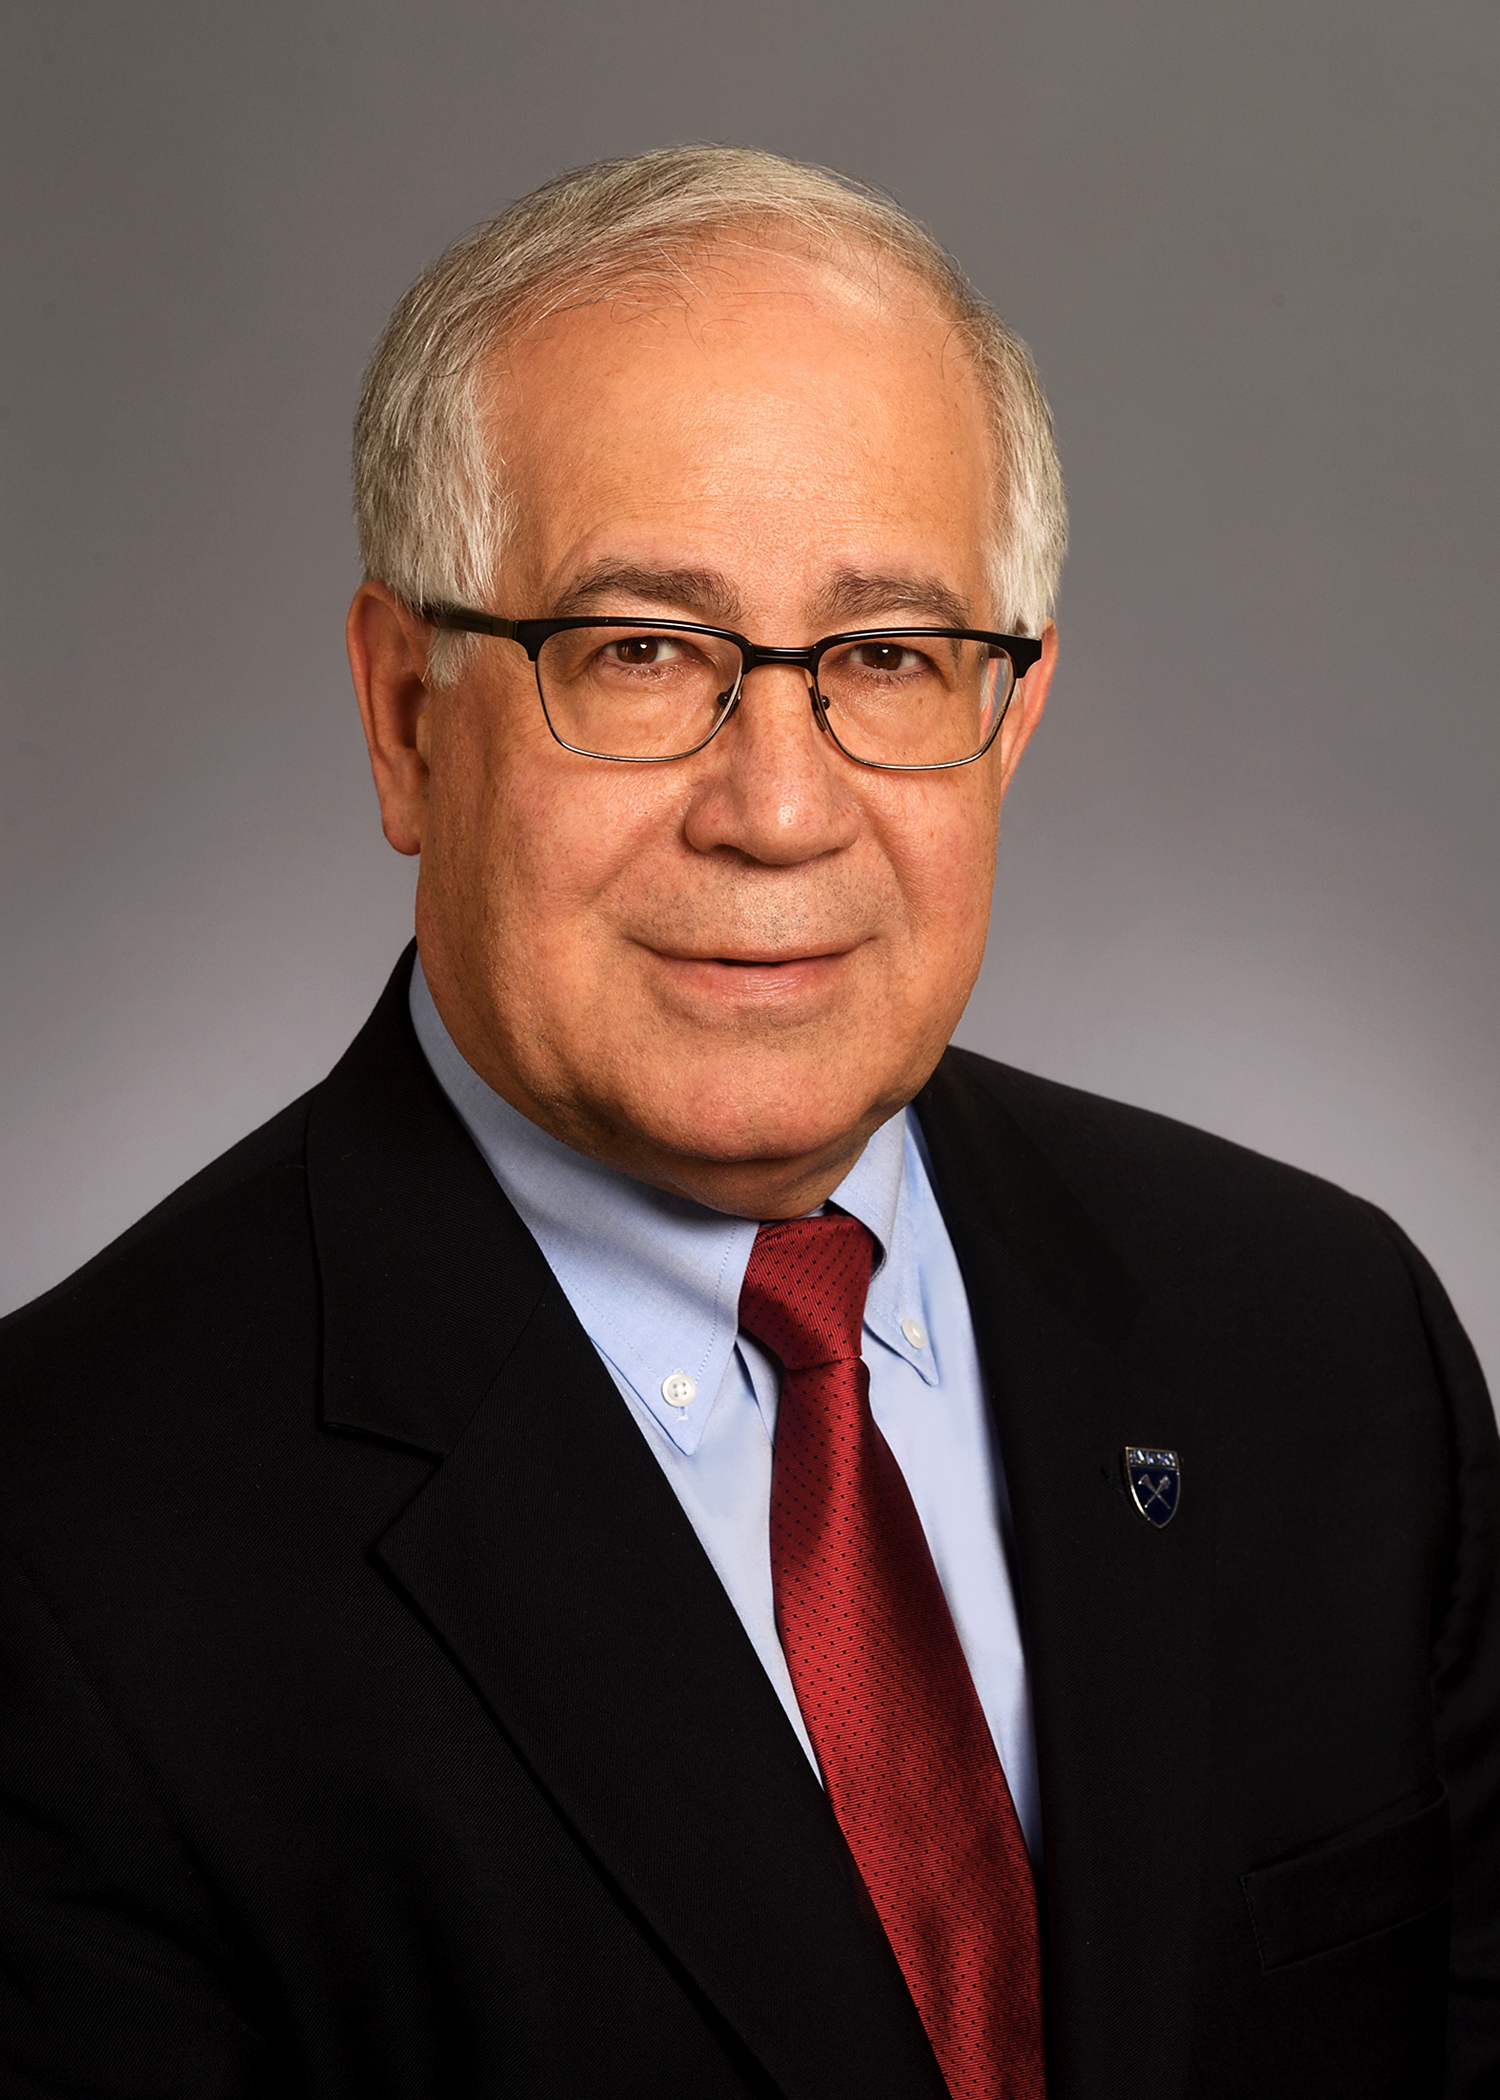 Ira. R. Horowitz, MD,  Director, The Emory Clinic, Physician Group President, Emory Healthcare